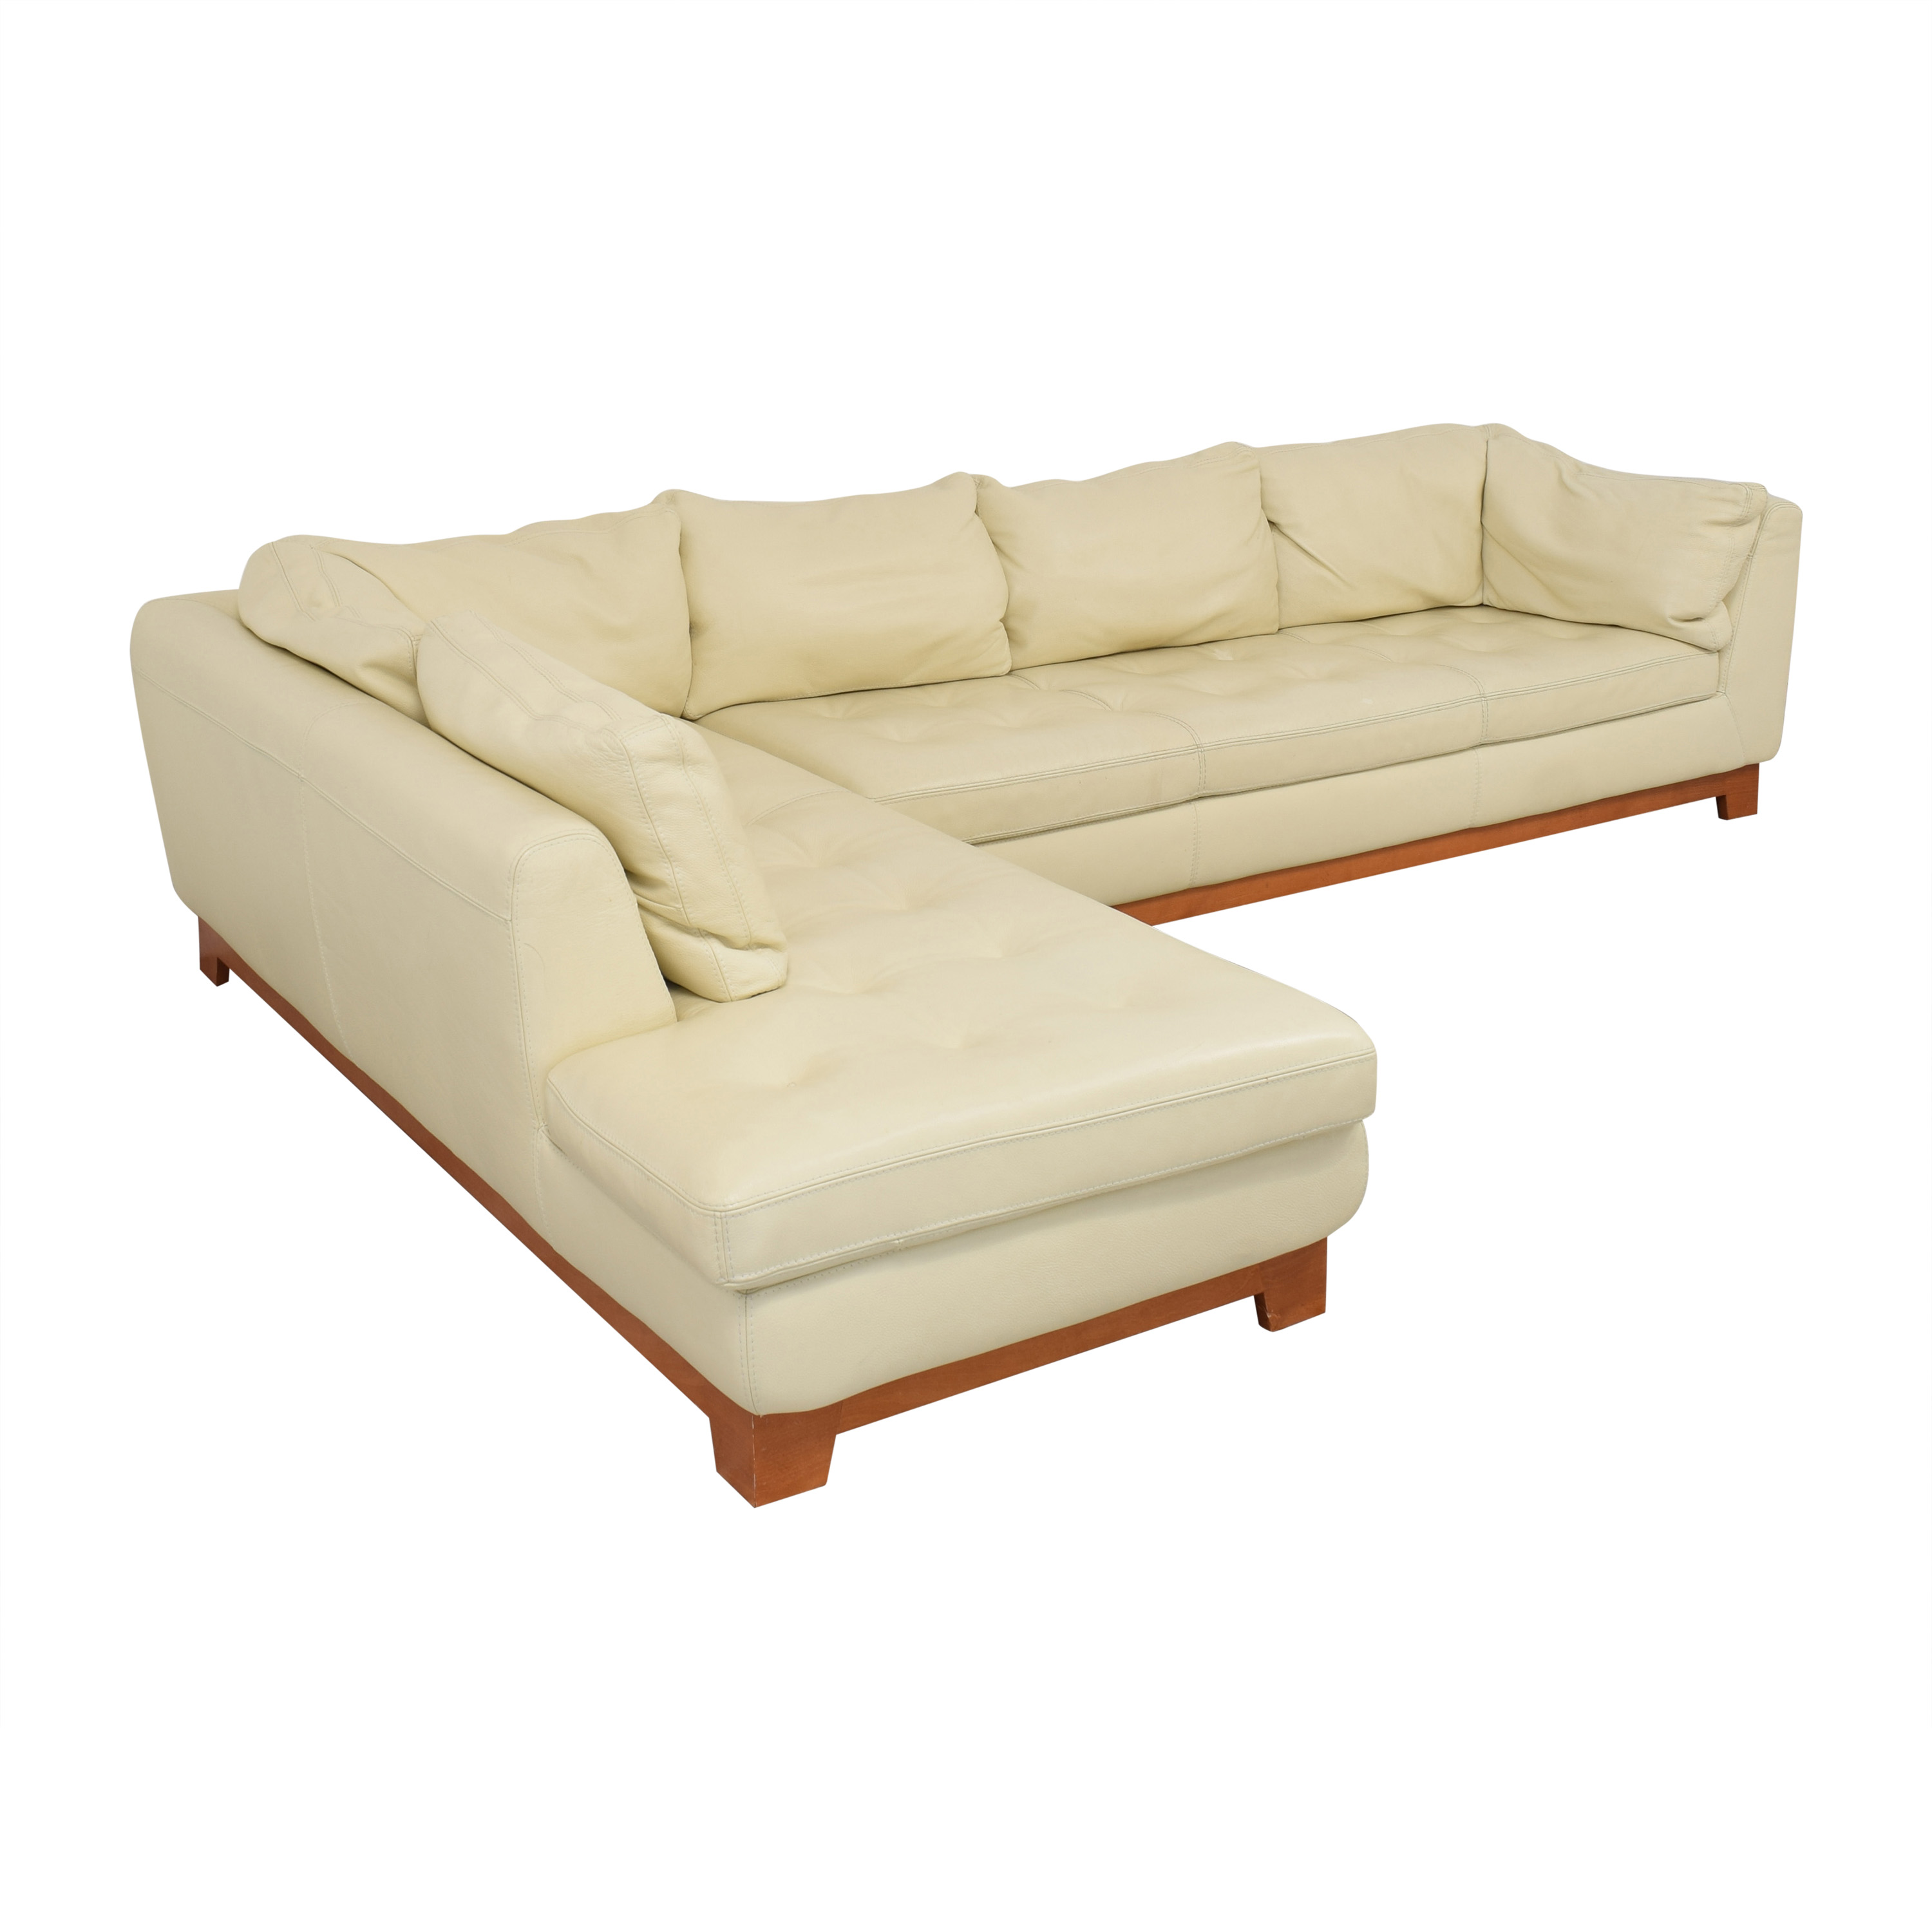 buy Roche Bobois Roche Bobois Chaise Sectional Sofa with Ottomans online